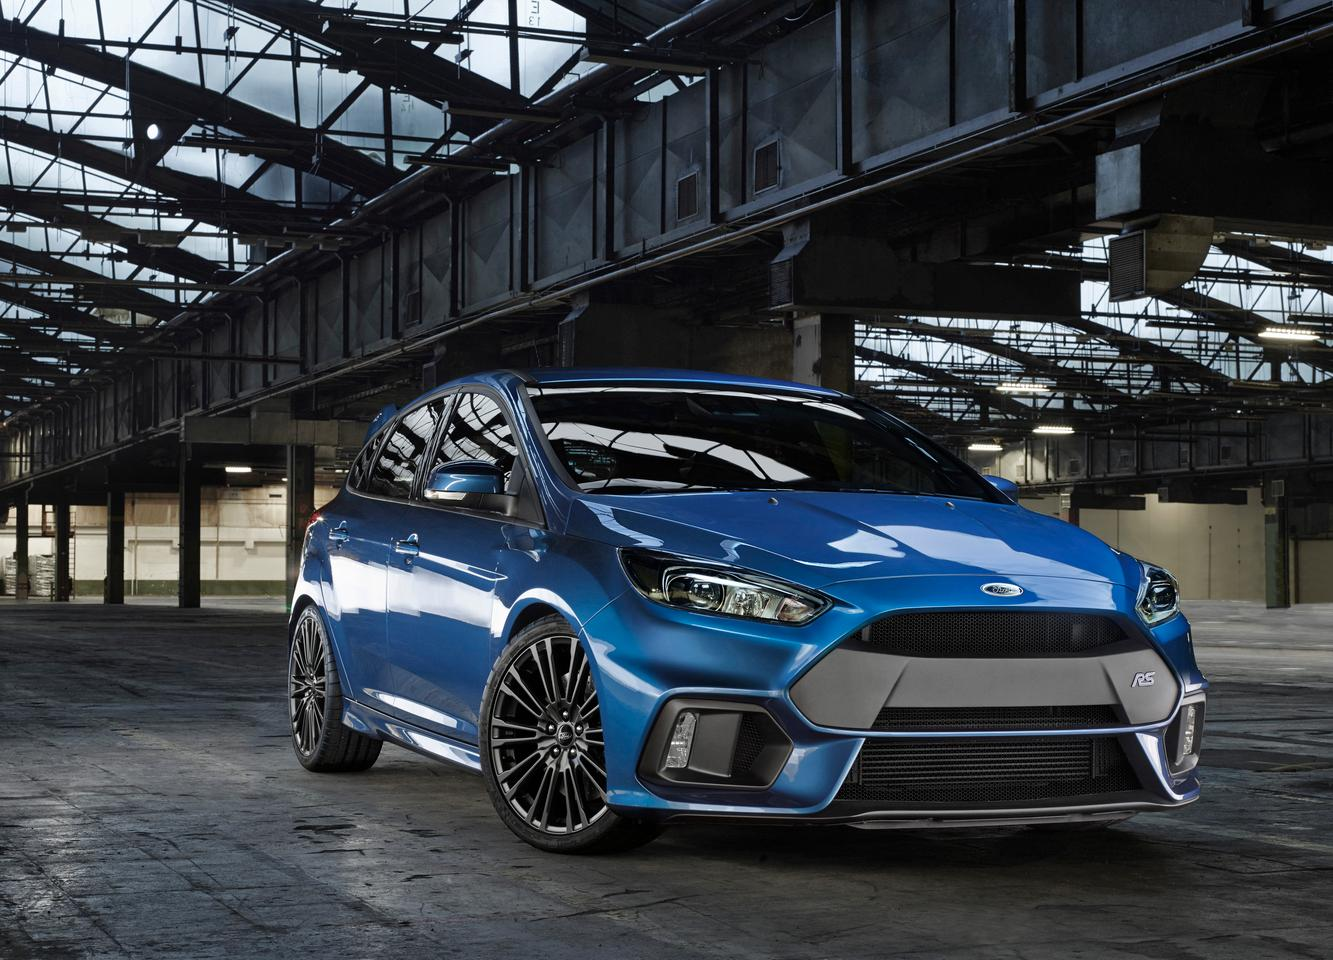 Ford's Focus RS is powered by a 2.3-liter EcoBoost engine